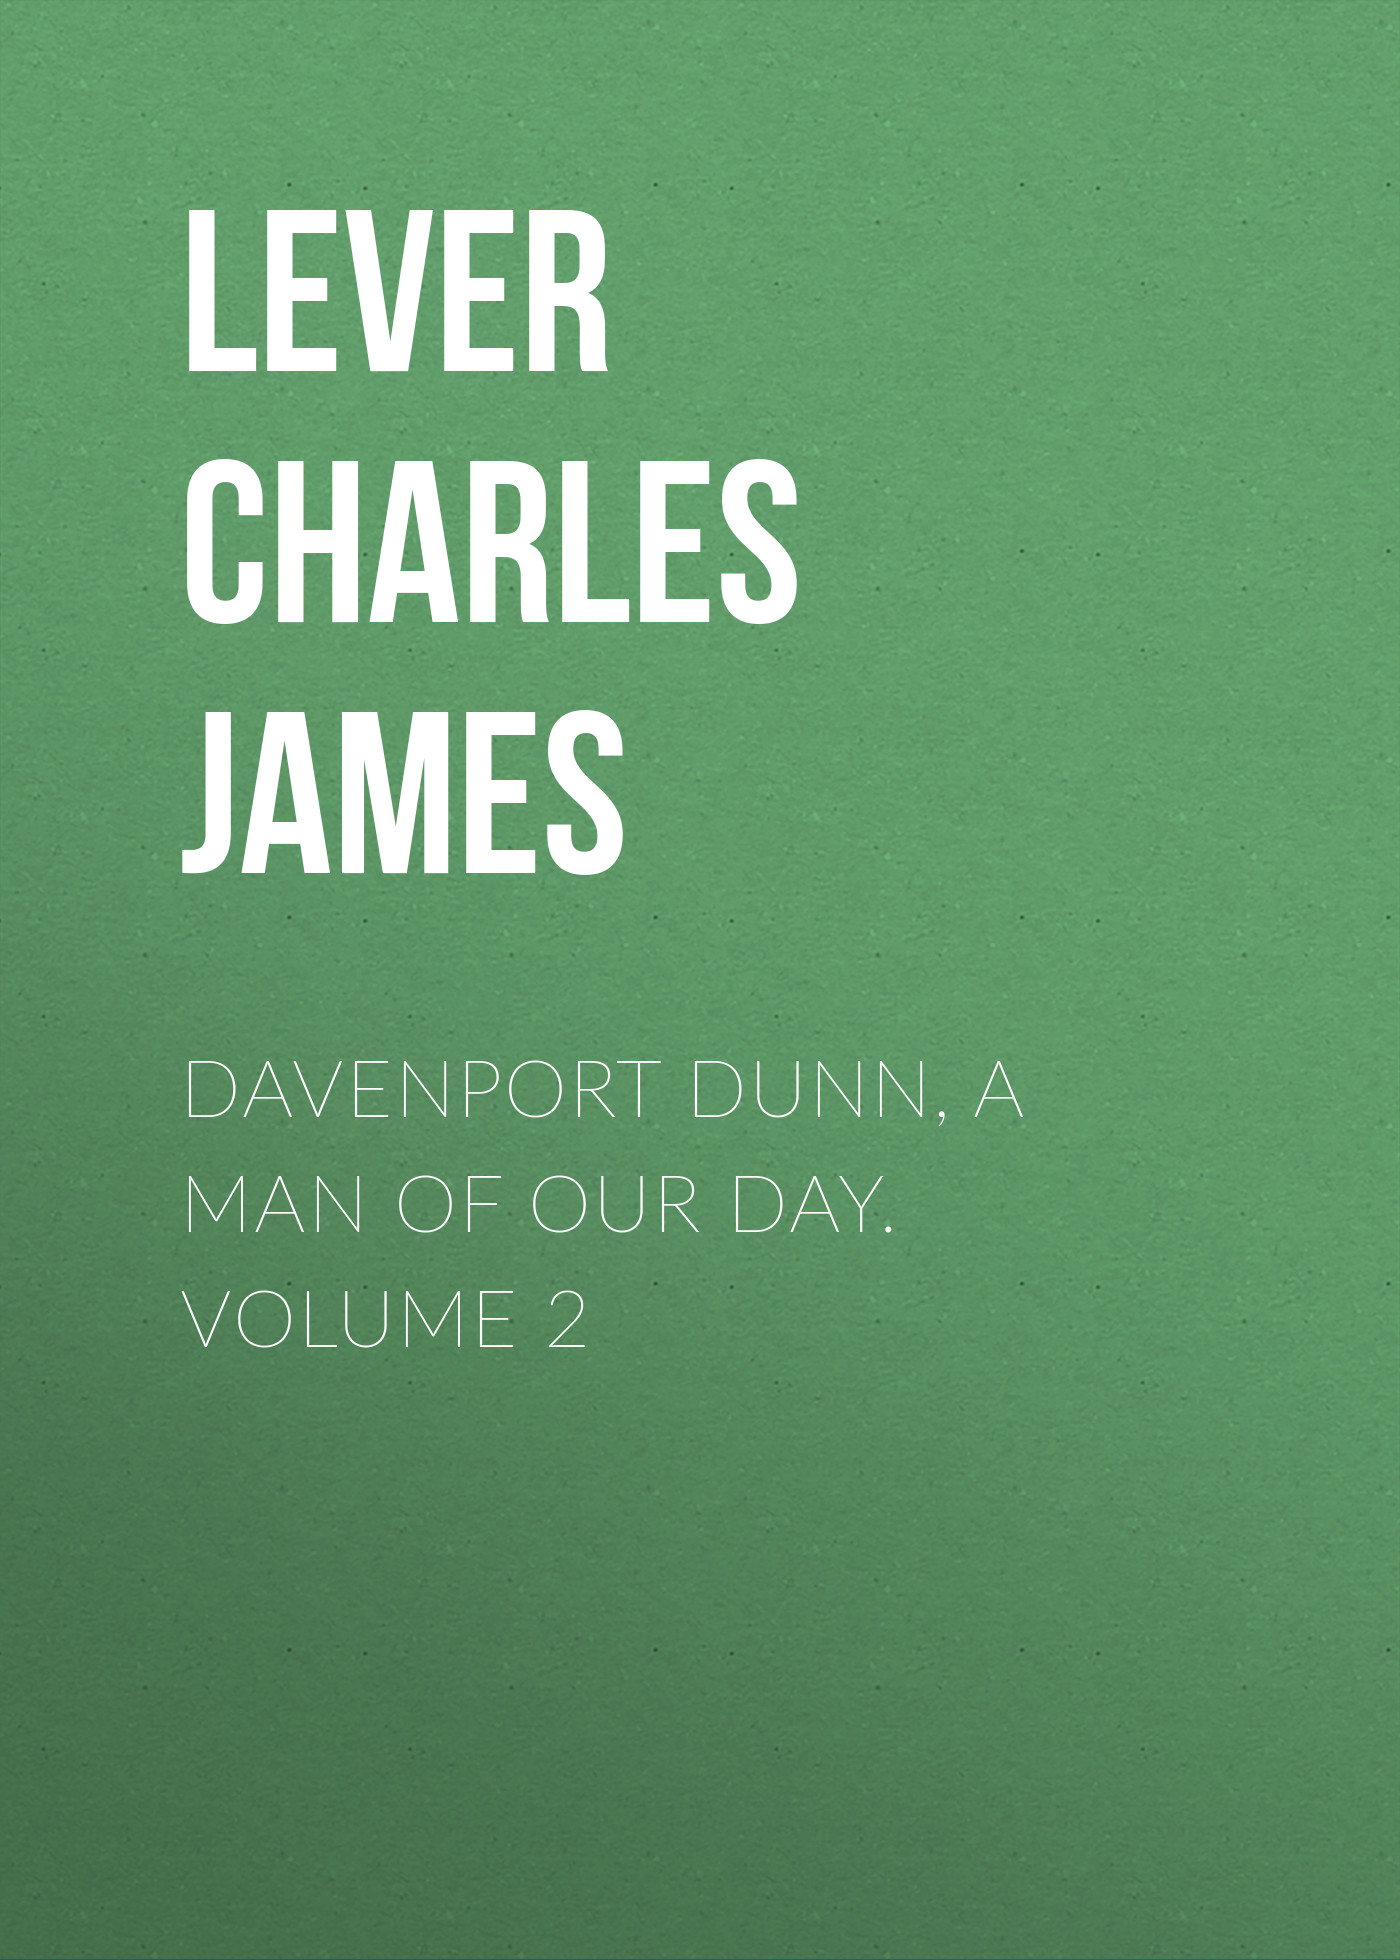 Lever Charles James Davenport Dunn, a Man of Our Day. Volume 2 купальник lora grig lora grig mp002xw1iqt8